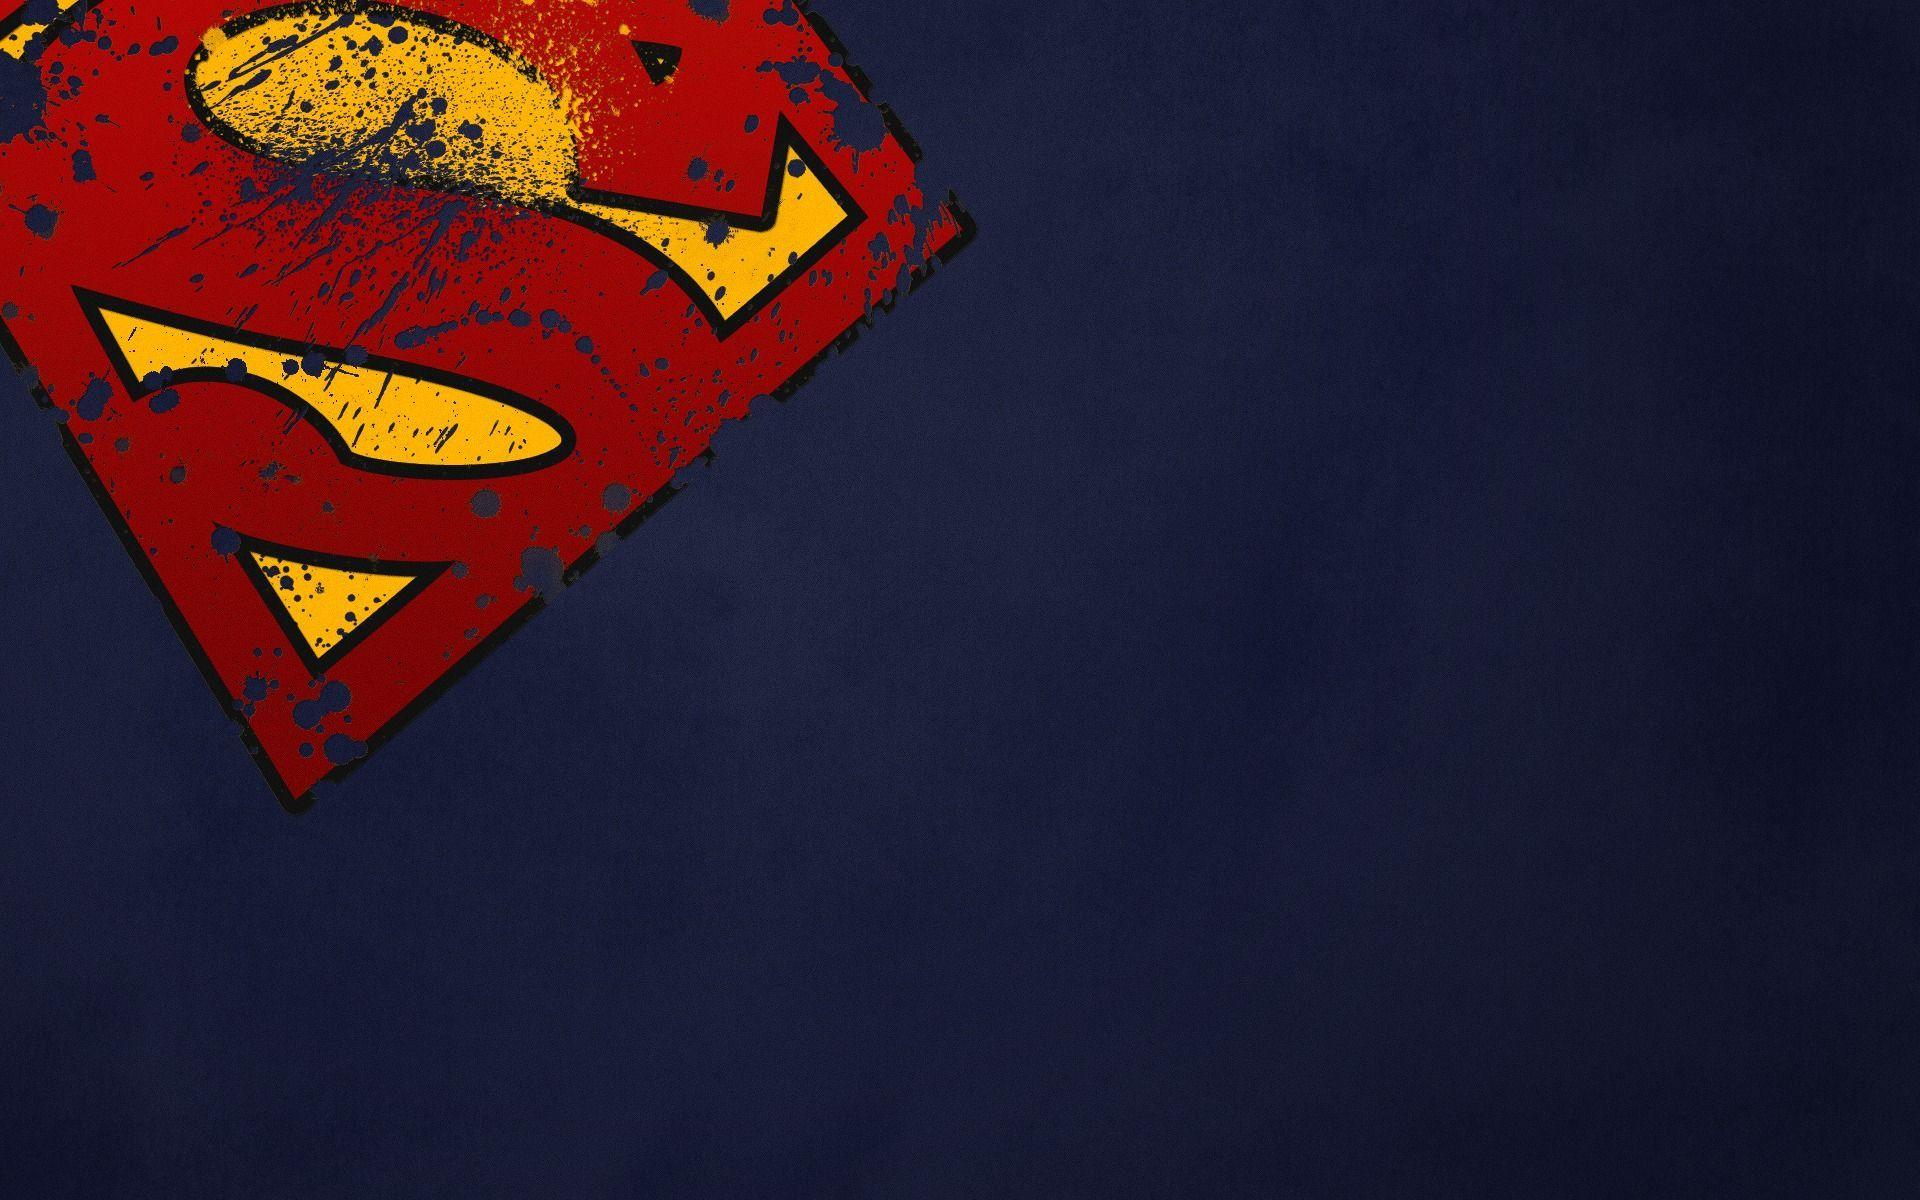 superman wallpaper for a nokia - photo #32